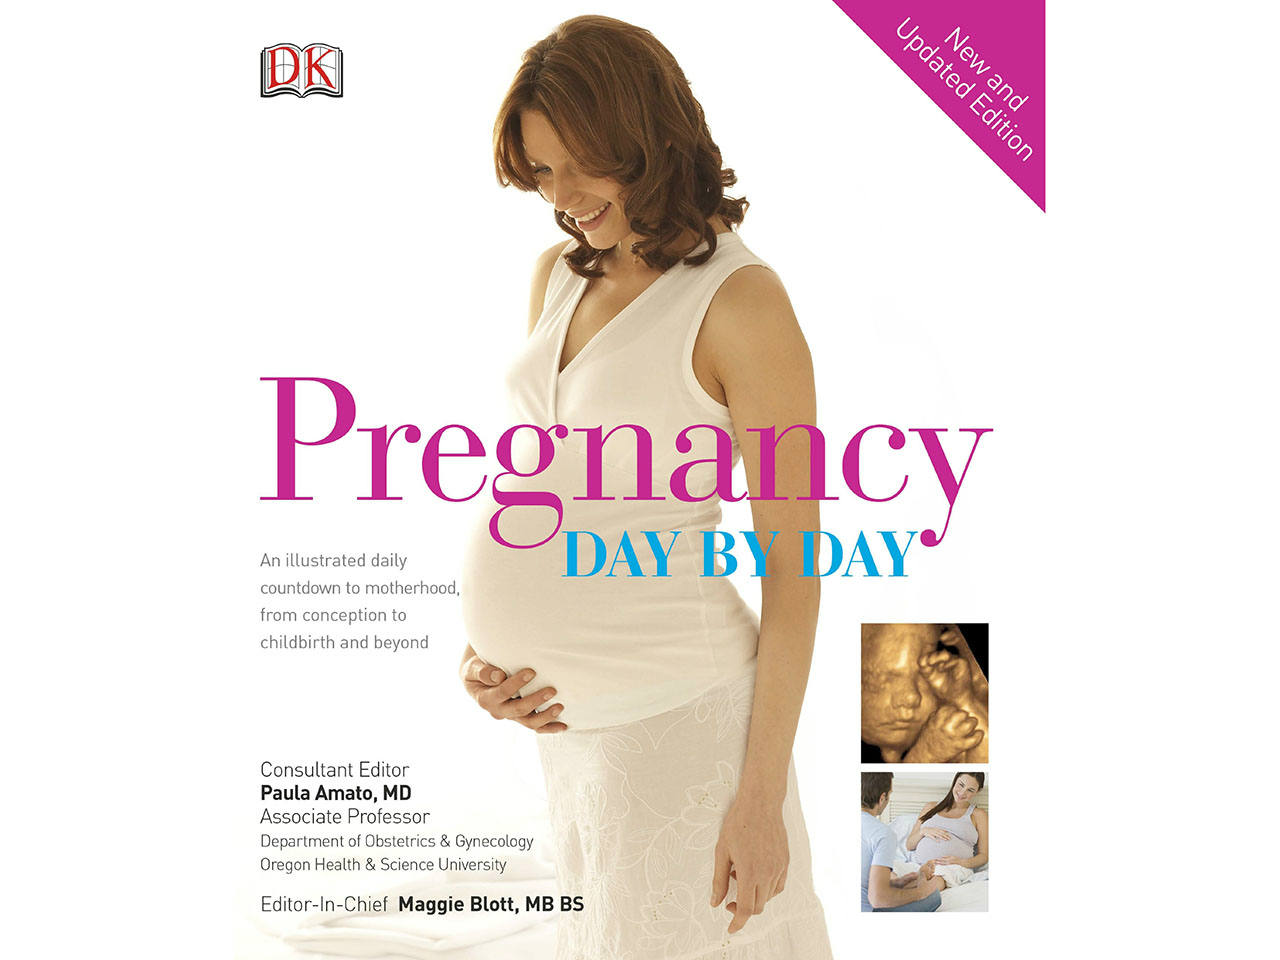 Cover of the pregnancy book Pregnancy Day by Day